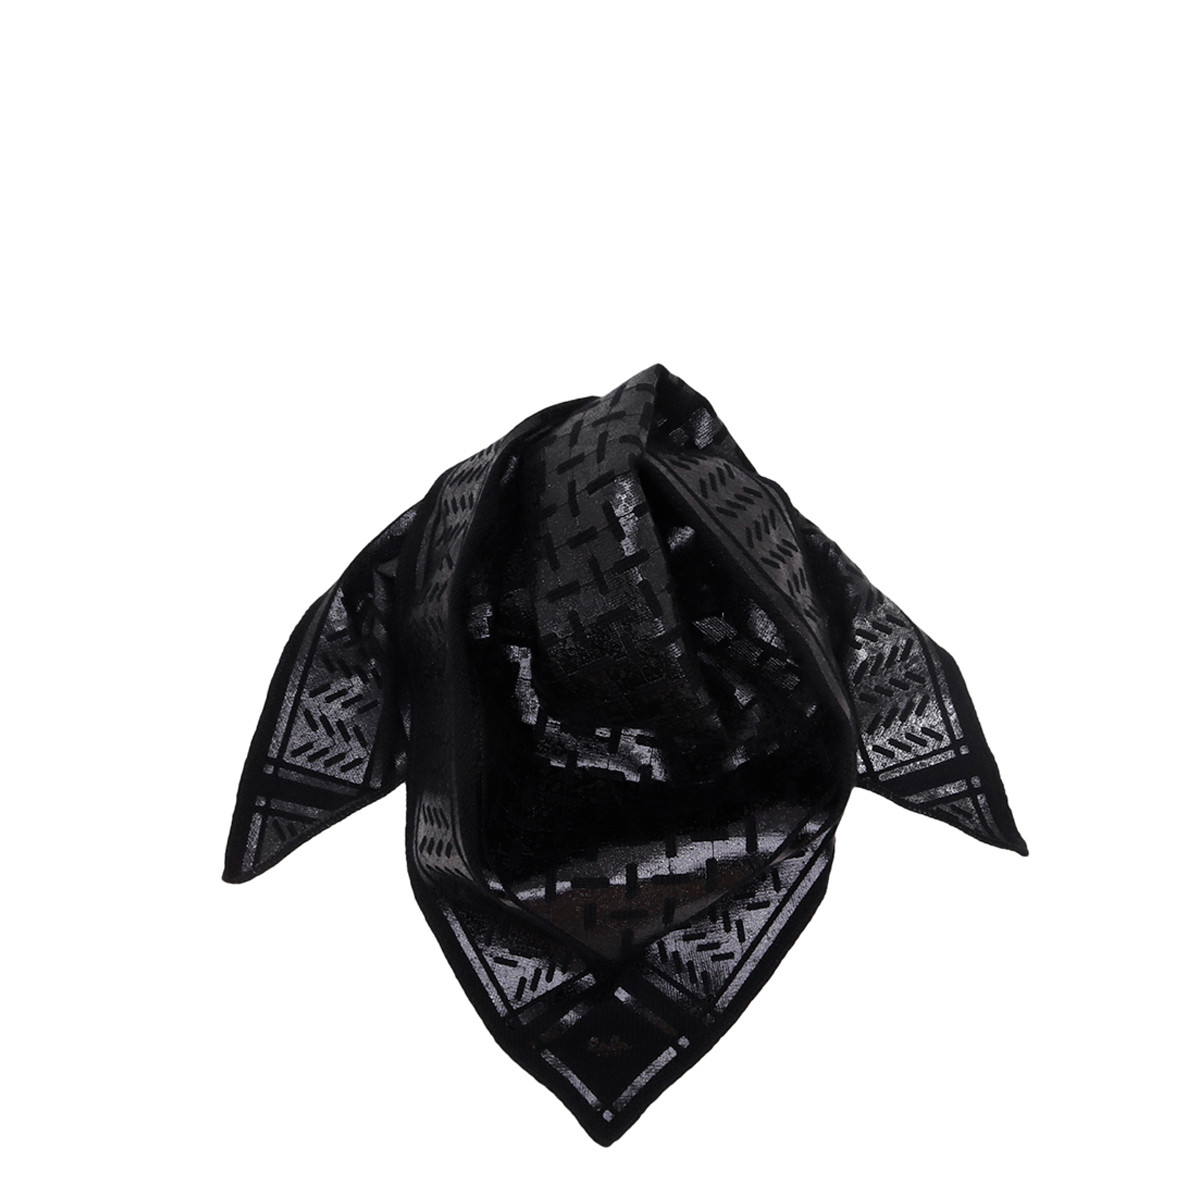 LALA BERLIN TØRKLÆDE - TRIANGLE NEO SMALL BLACK FOIL